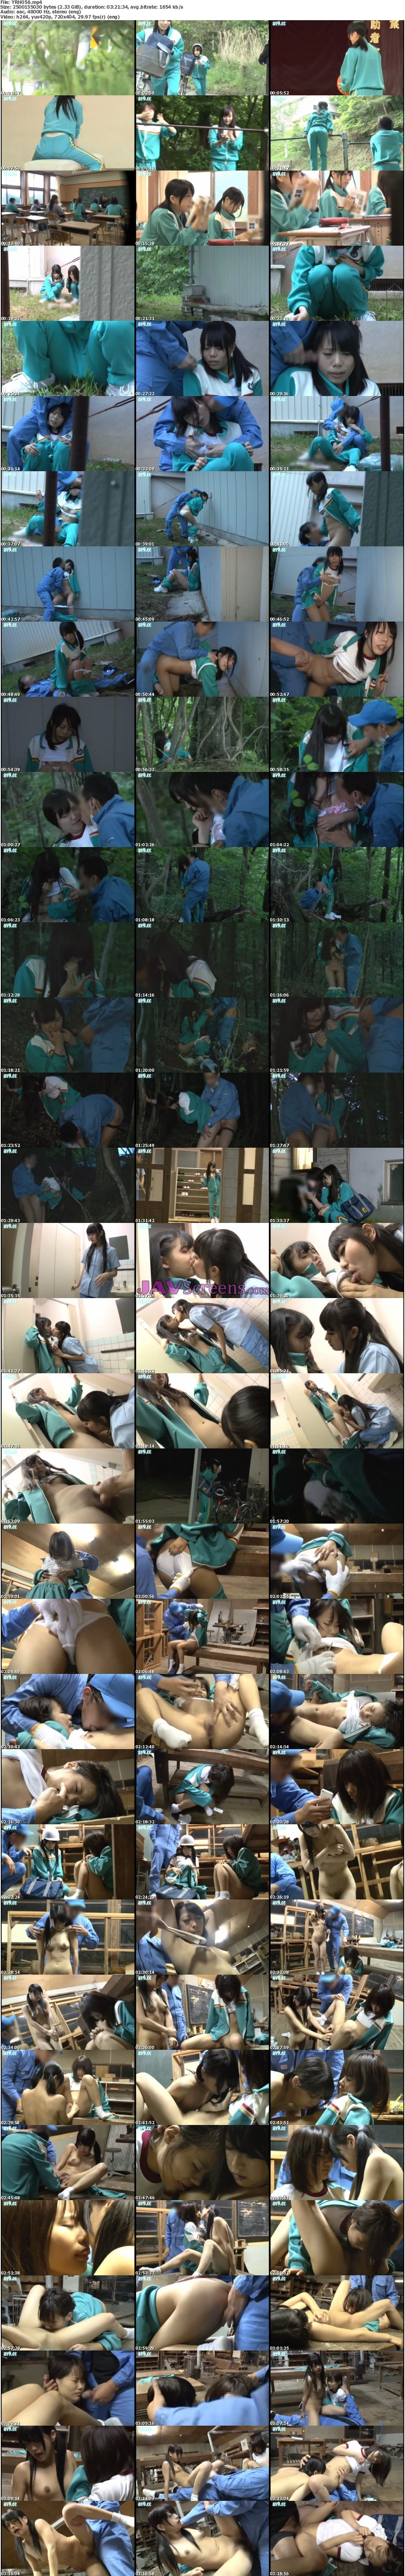 YRH-056.jpg - JAV Screenshot